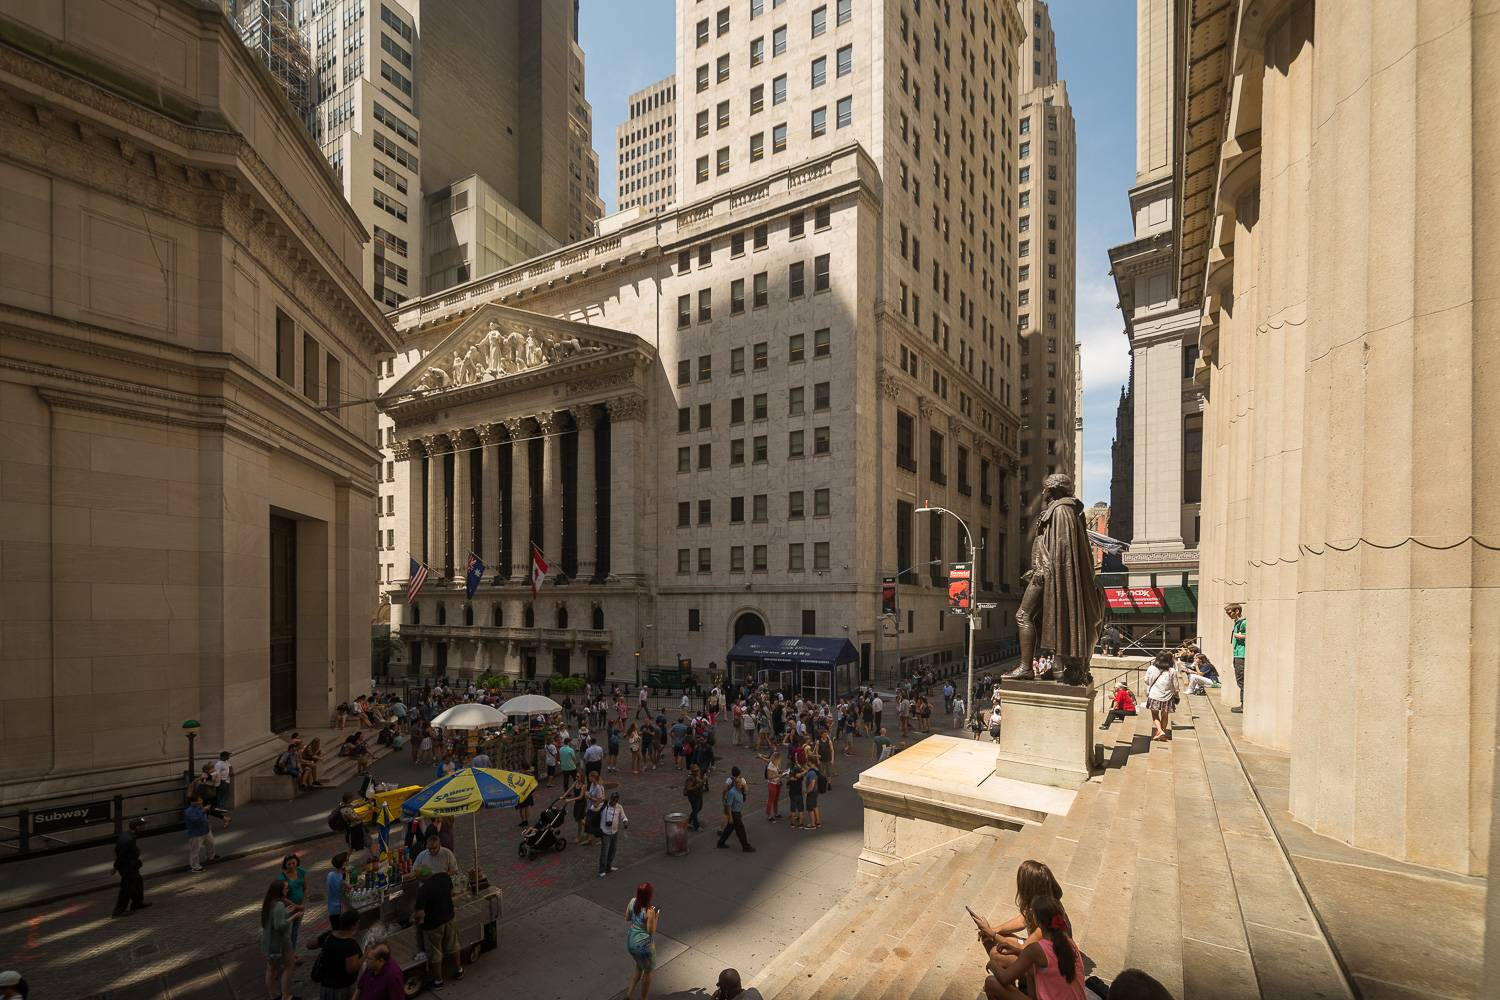 Photo du bâtiment de la Bourse de New York.